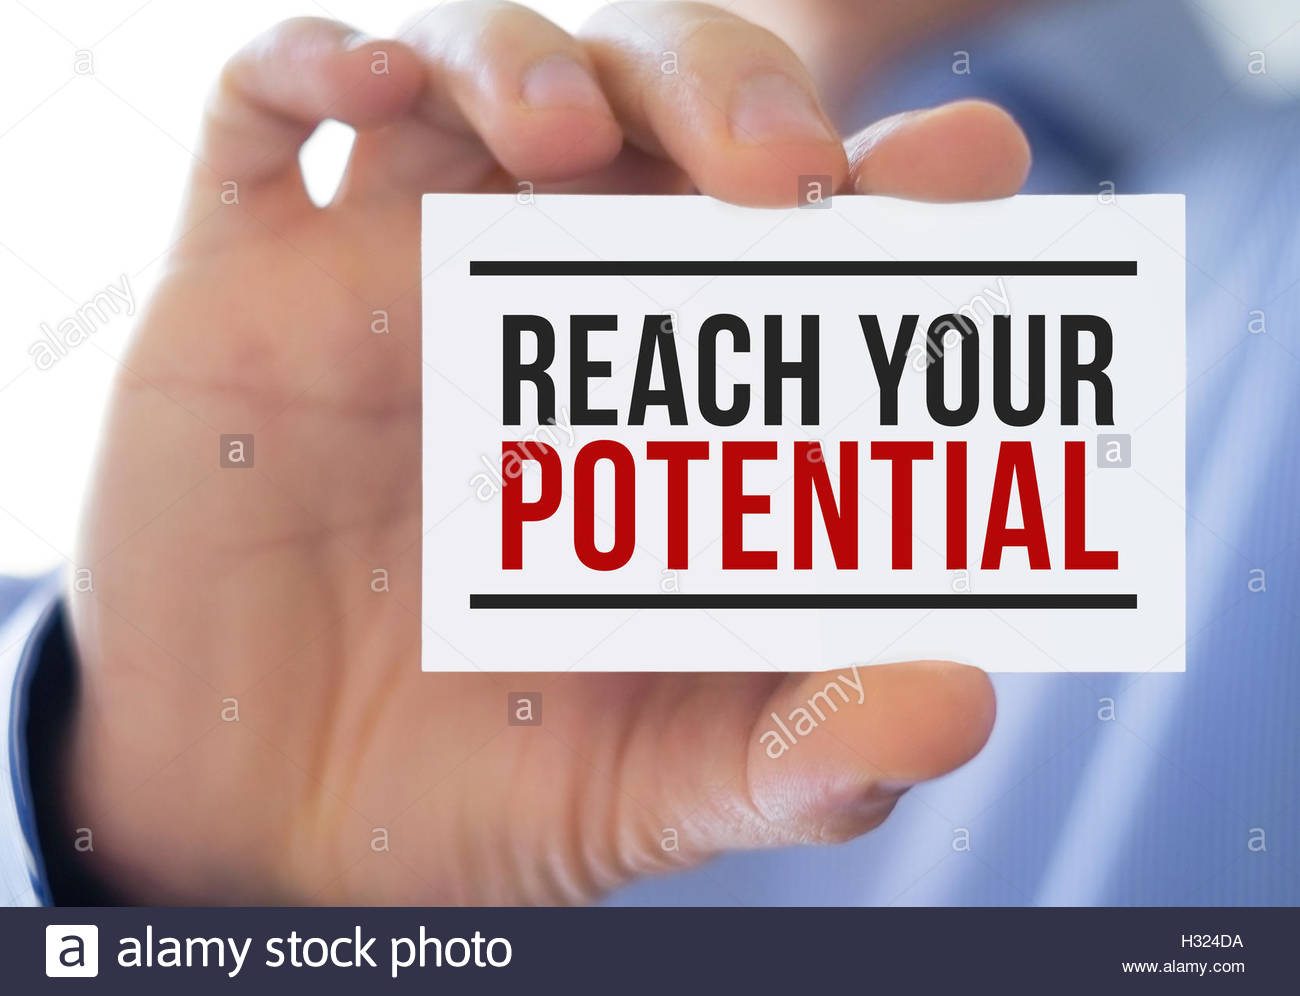 reach your potential - Stock Image